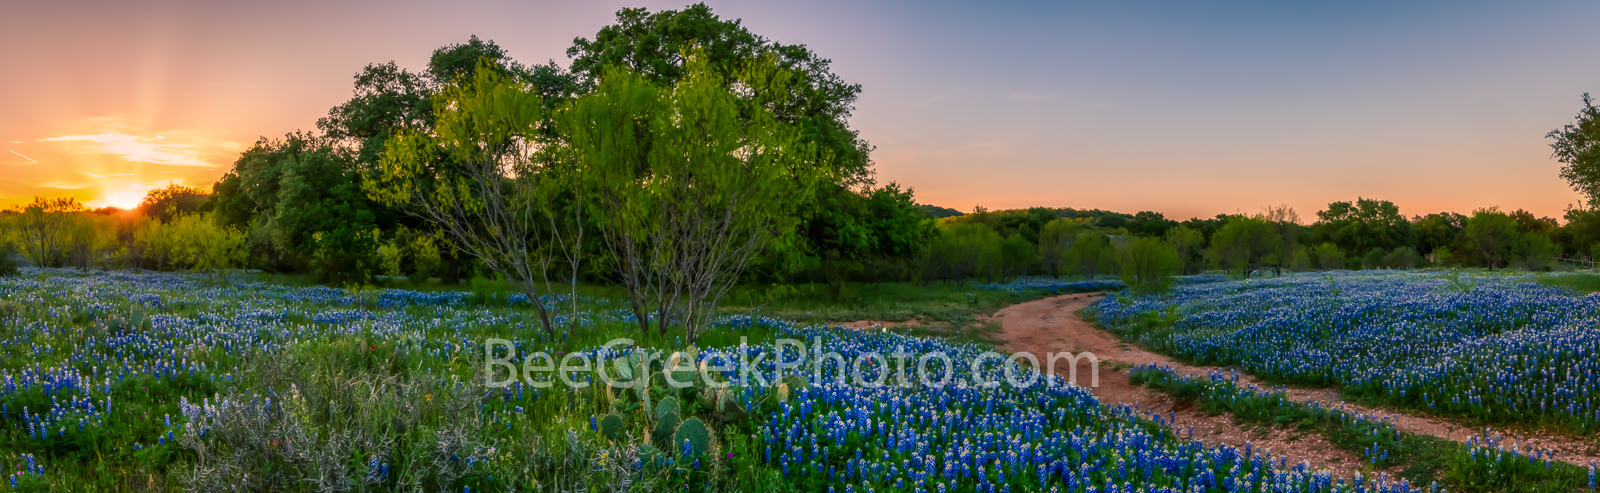 bluebonnets, indian paintbrush, wildflowers, texas hill country, texas, blue bonnets,hill country, shadows, light, road, mesquite, golden glow, green, blue, llano, sun, shadows, light, trees, curved r, photo